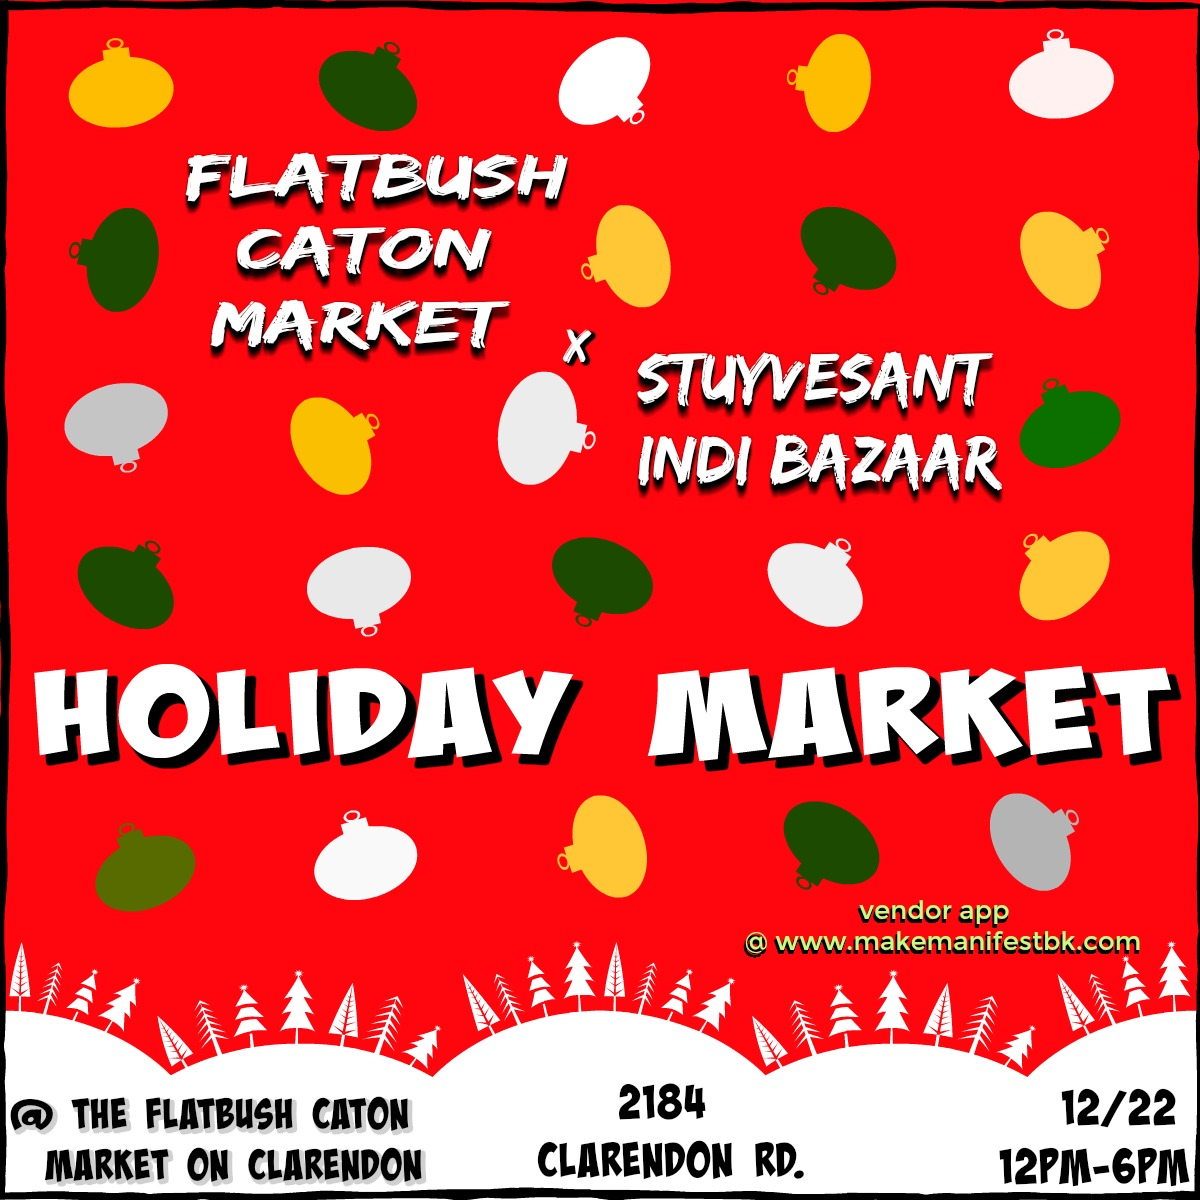 A Holiday Market collaboration with the Flatbush Caton Market on Clarendon Rd. - $50 vendor spaces. Click to Apply here!